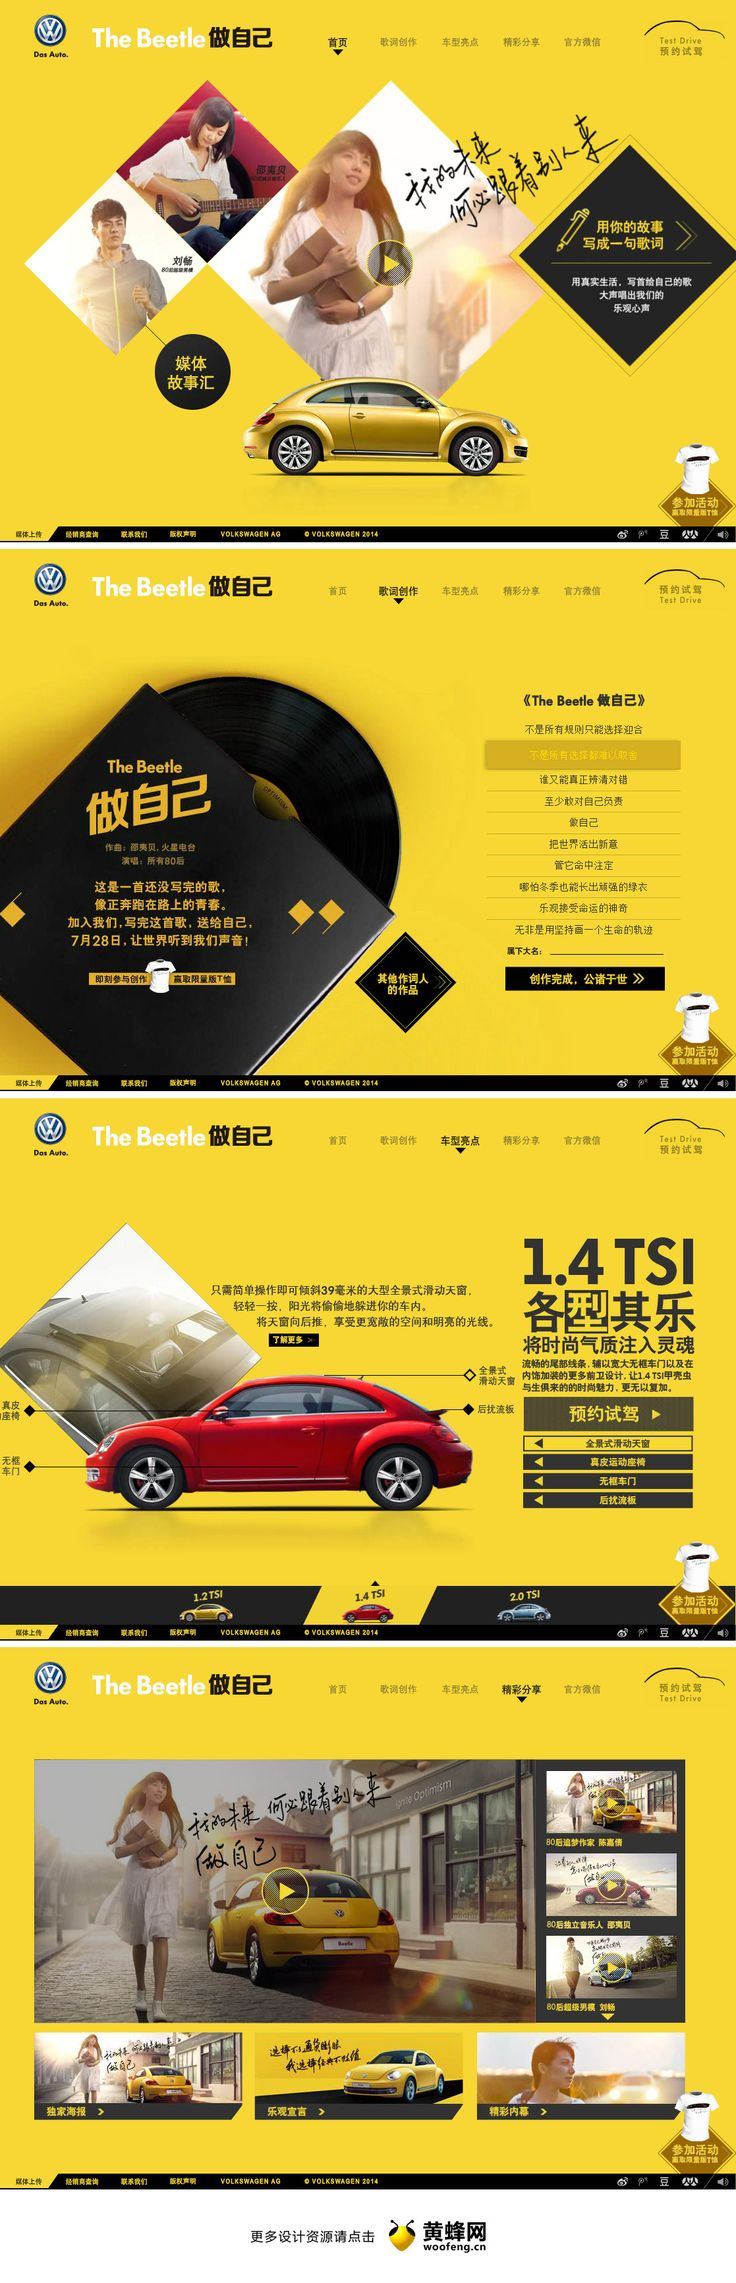 The Beetle 做自己,来源自黄蜂网http://woofeng.cn/